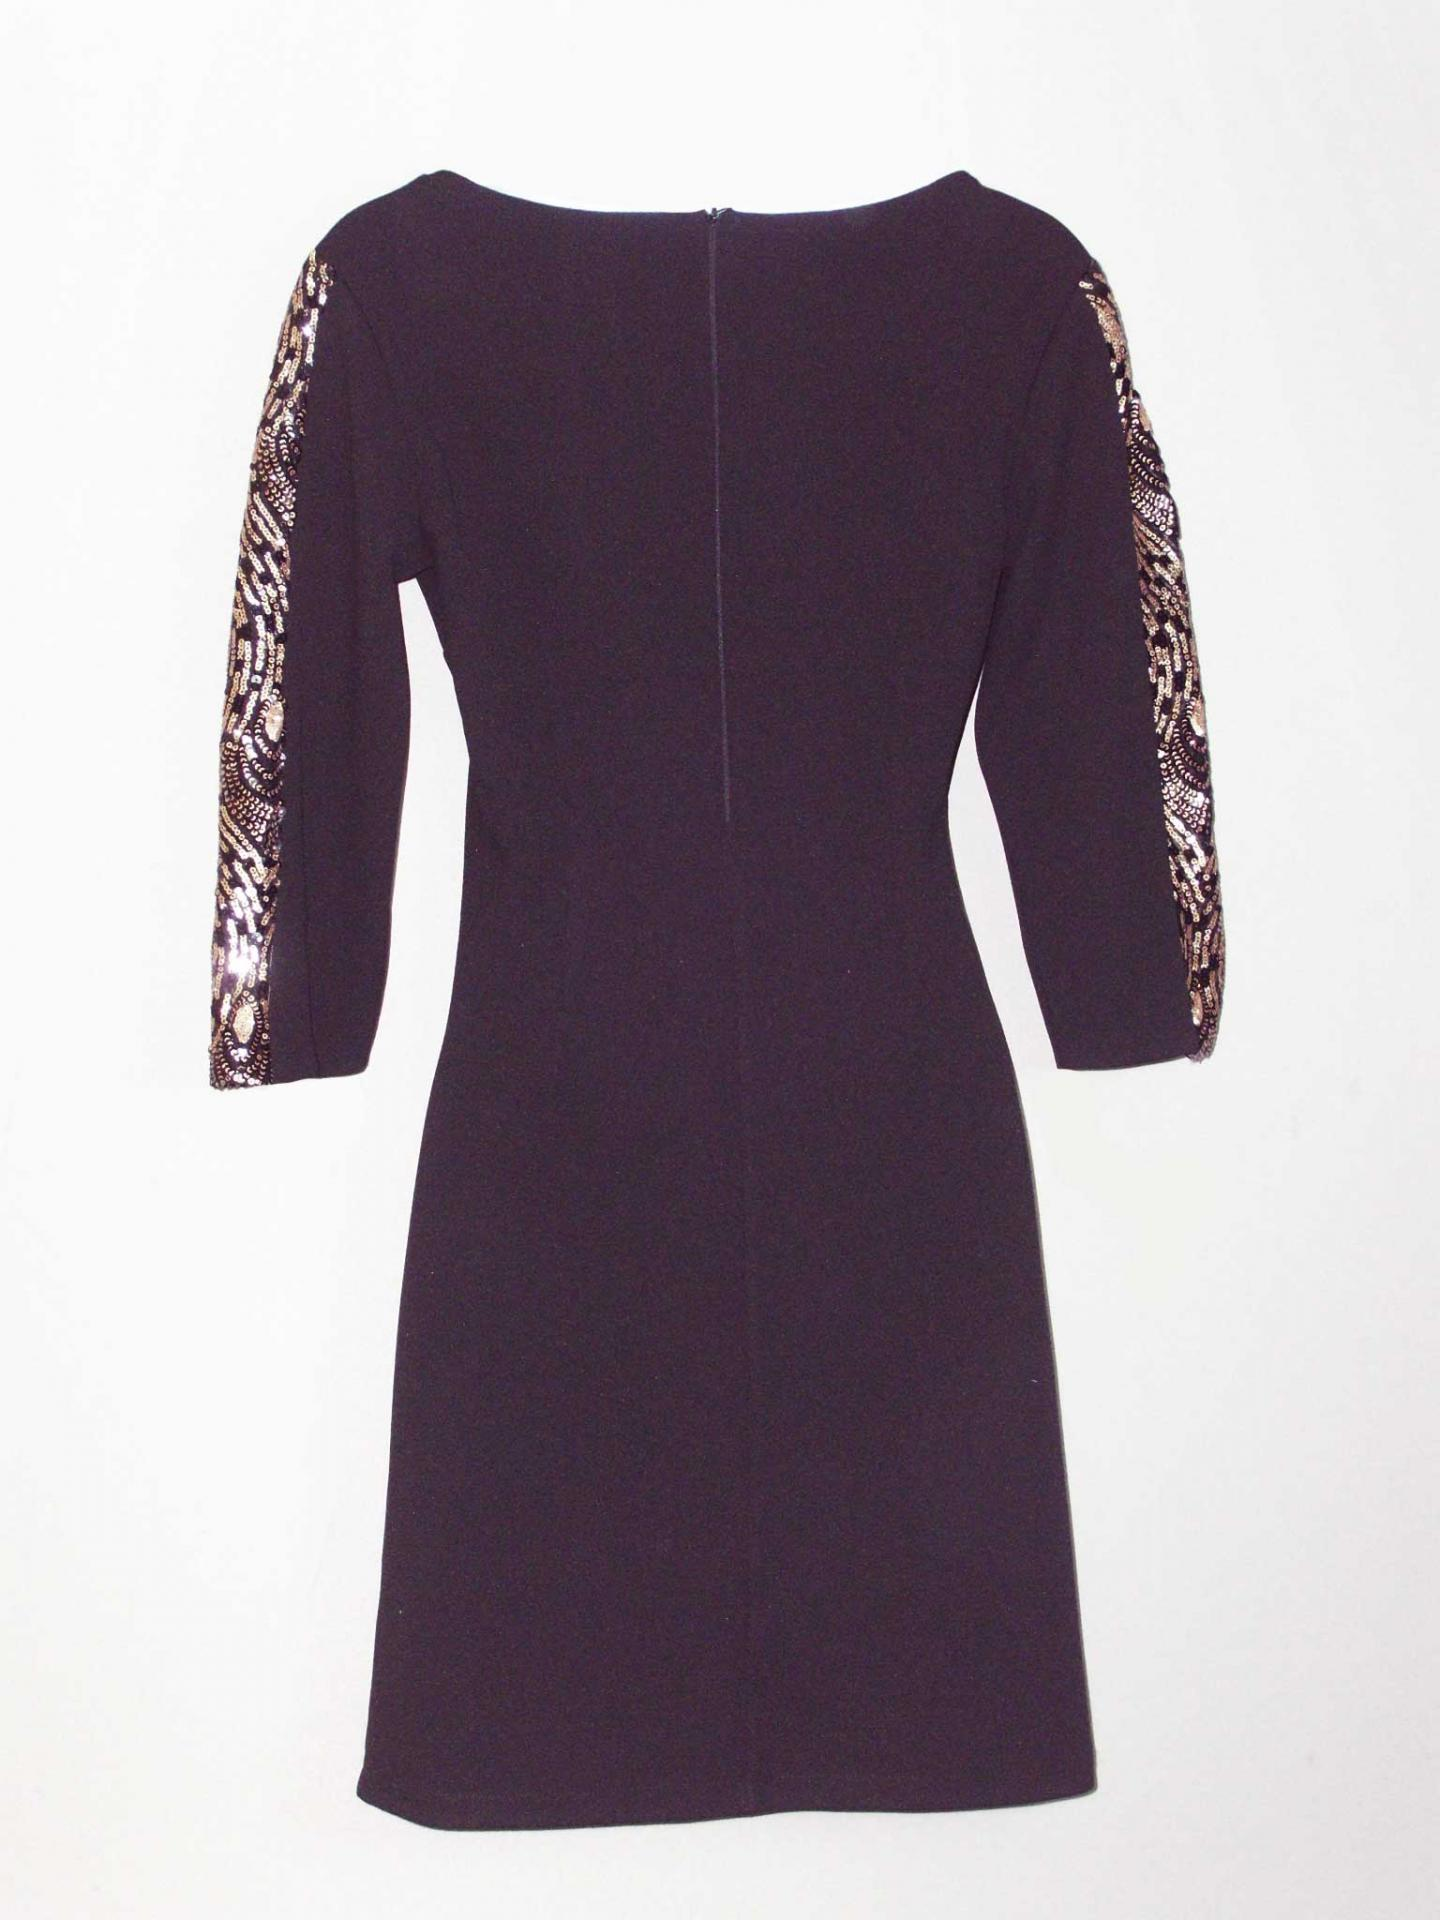 Robe soiree manches sequins